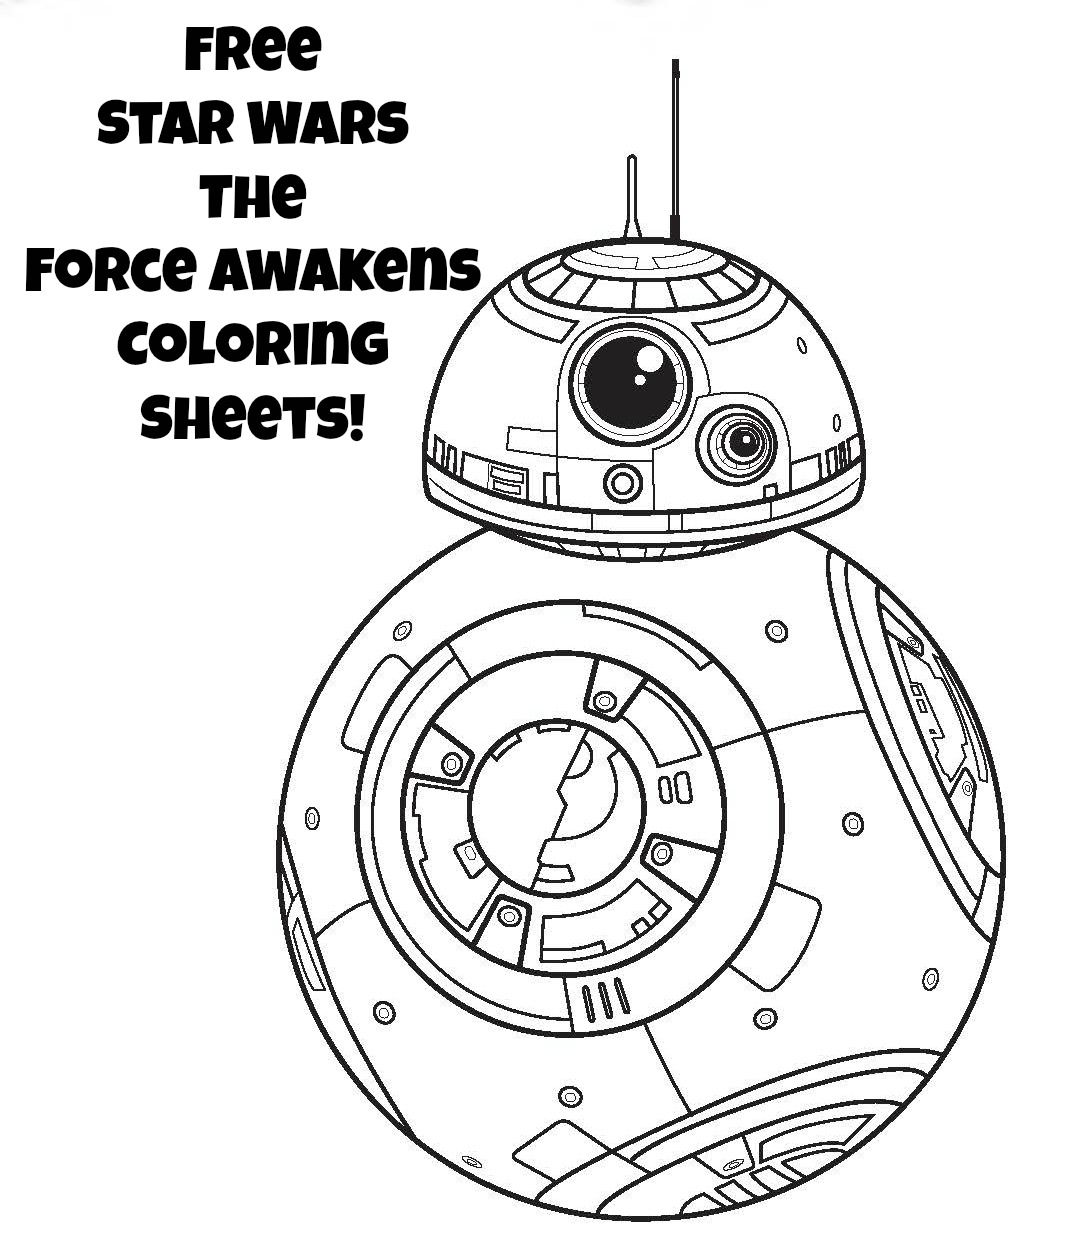 Online star wars coloring pages - Star Wars Coloring Pages The Force Awakens Coloring Pages